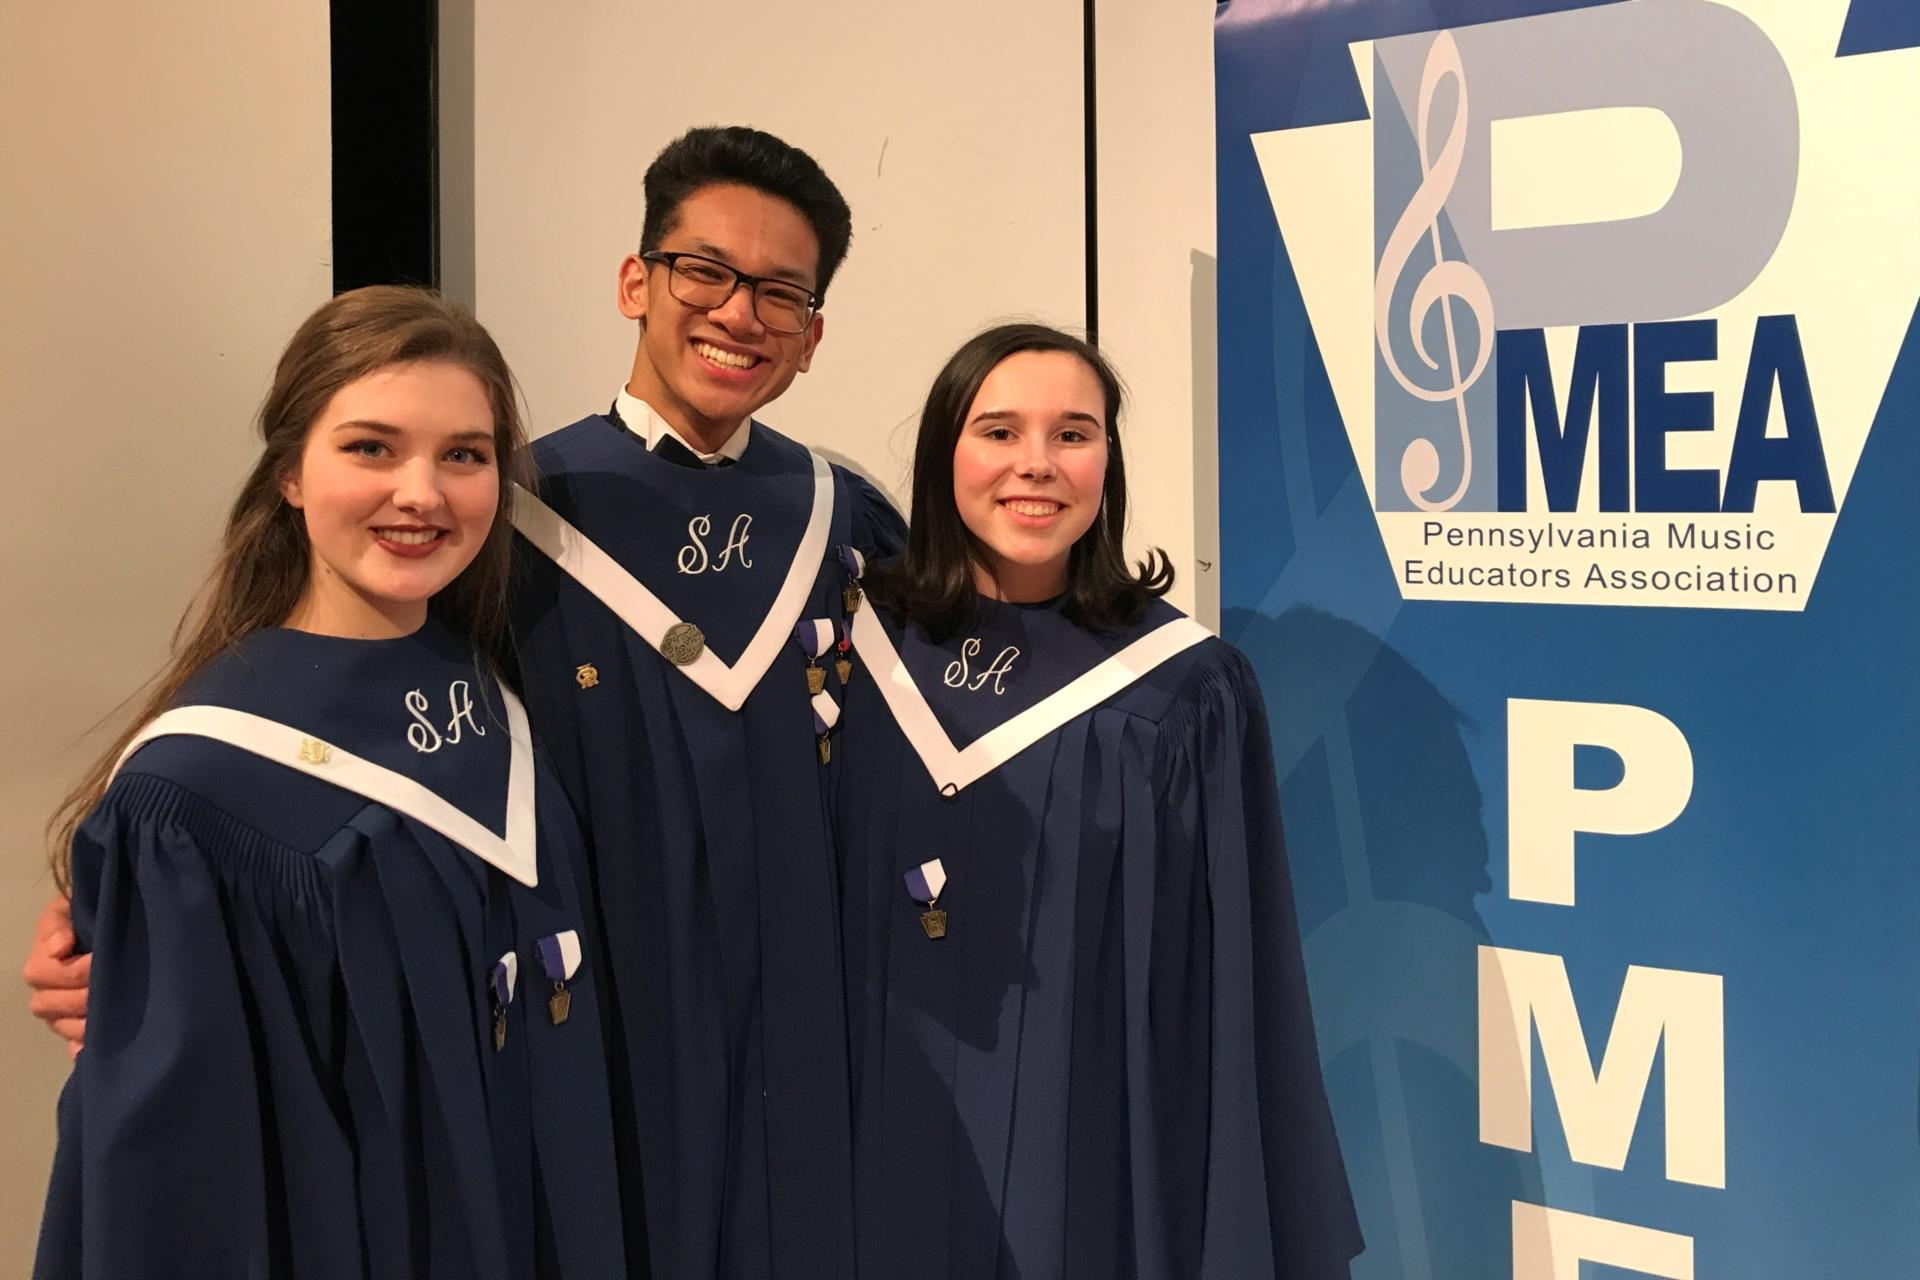 Kelsey Marshall, Alex Almonte, and Zoe Babbit in choir robes